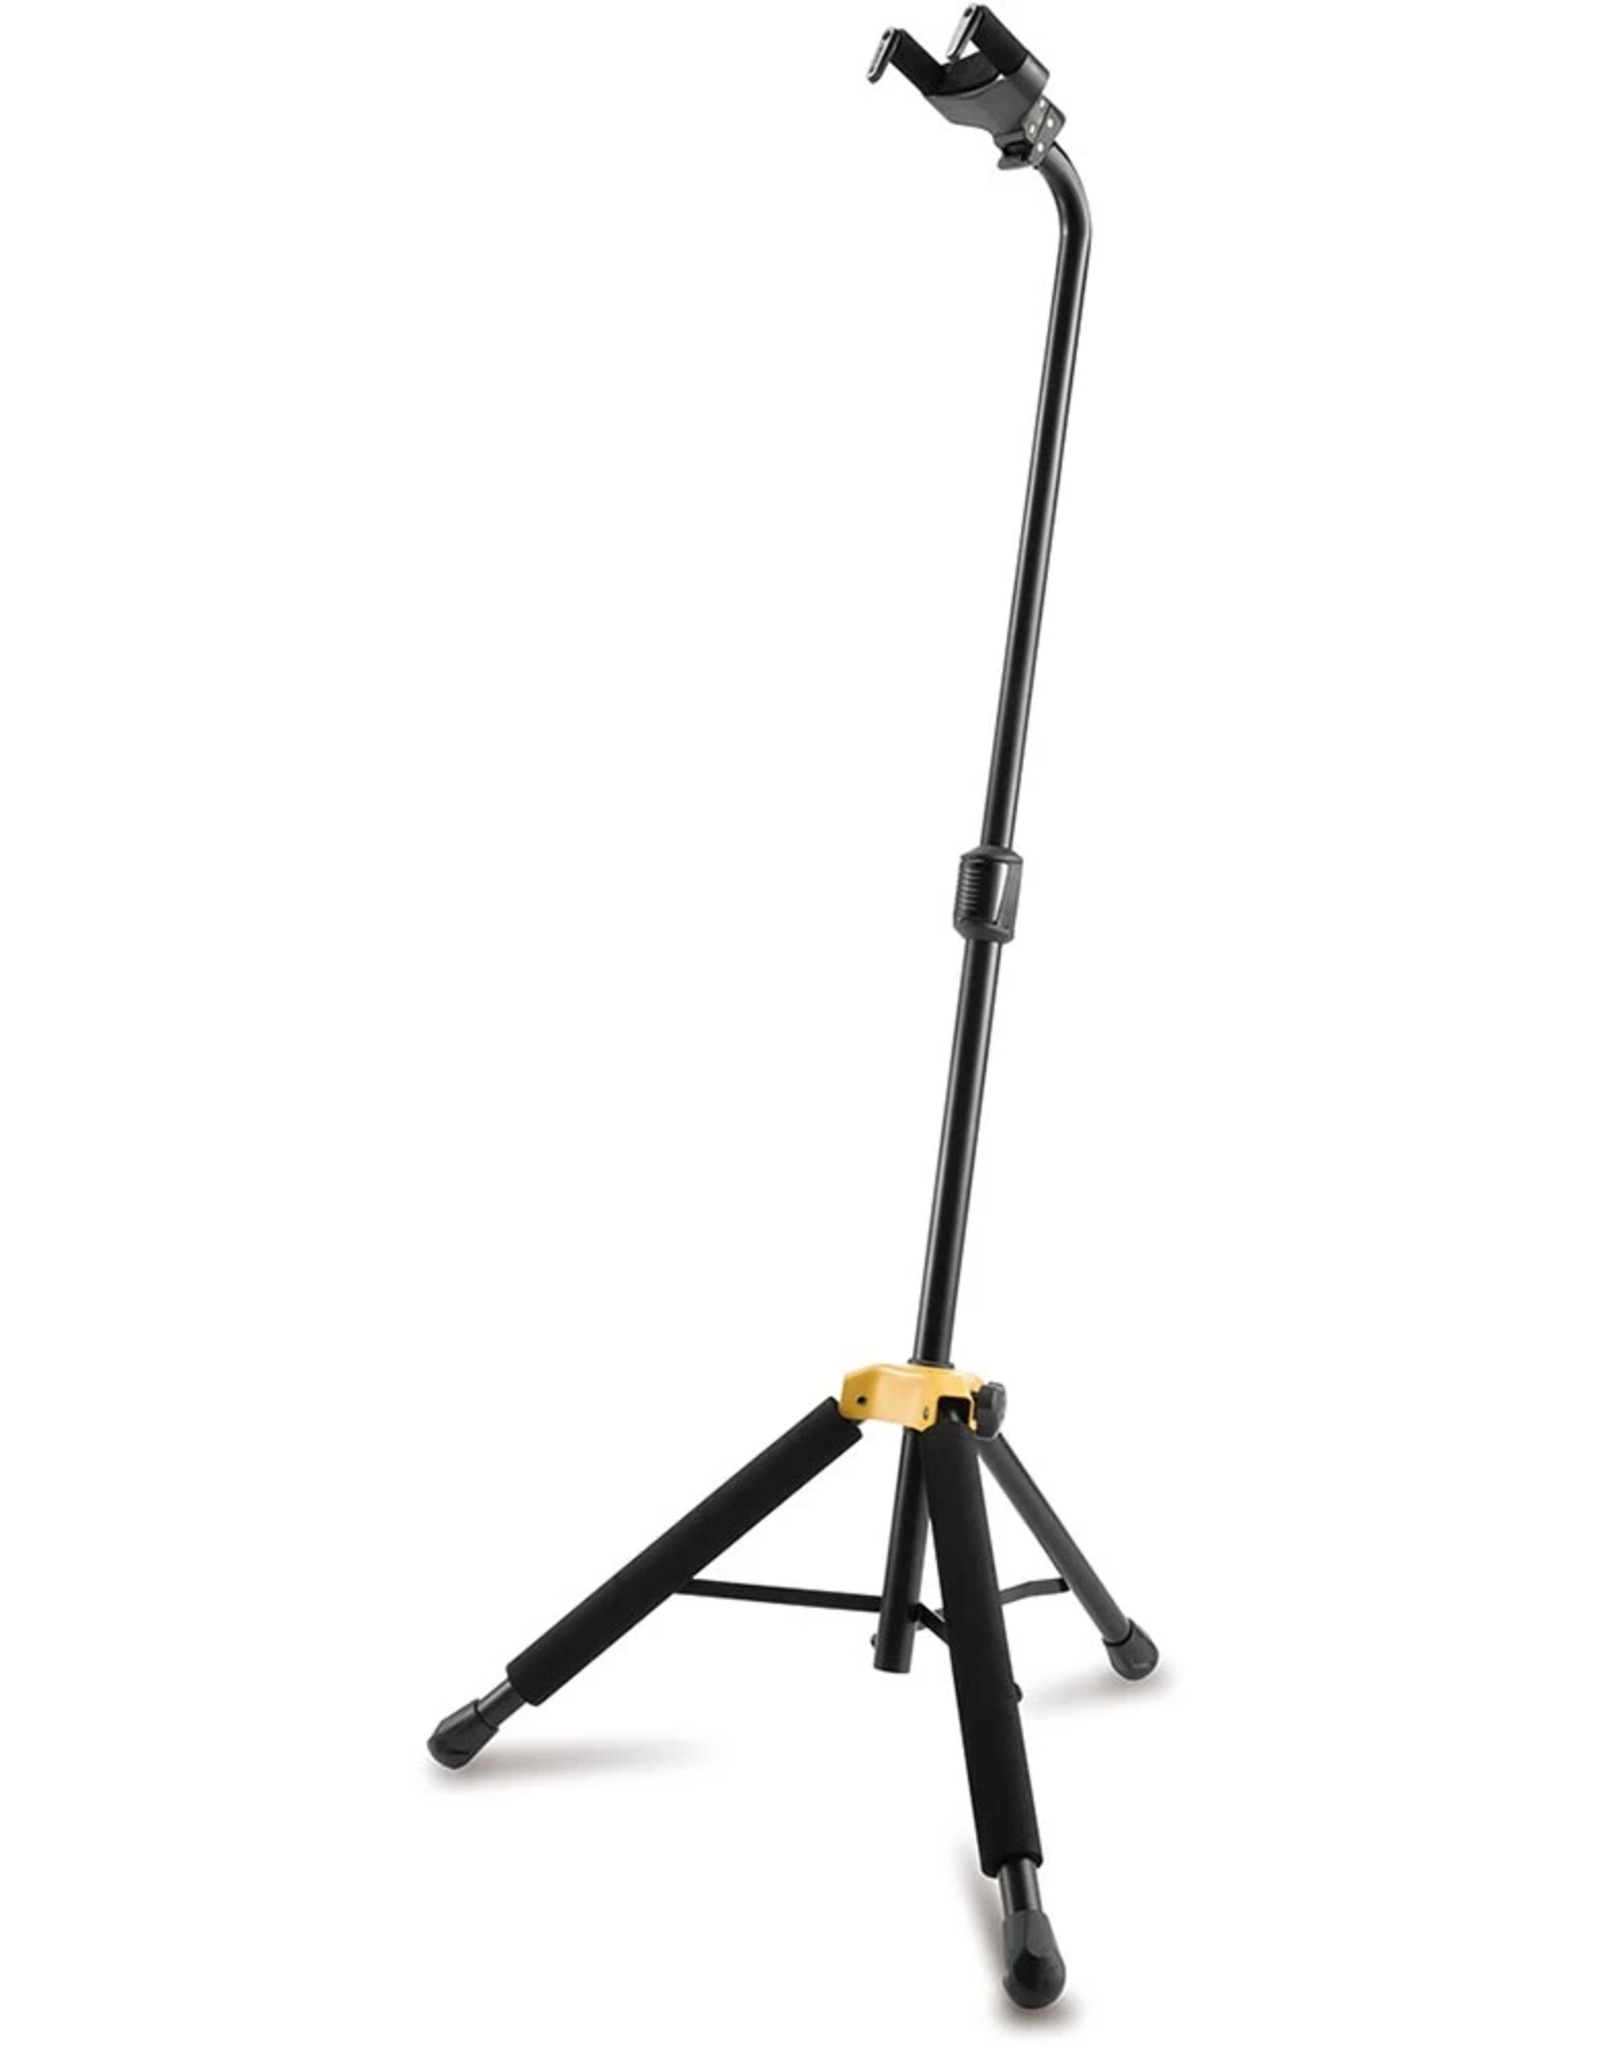 Hercules Hercules GII AutoGrip Guitar Stand with Specially Formulated Foam Rubber on Legs